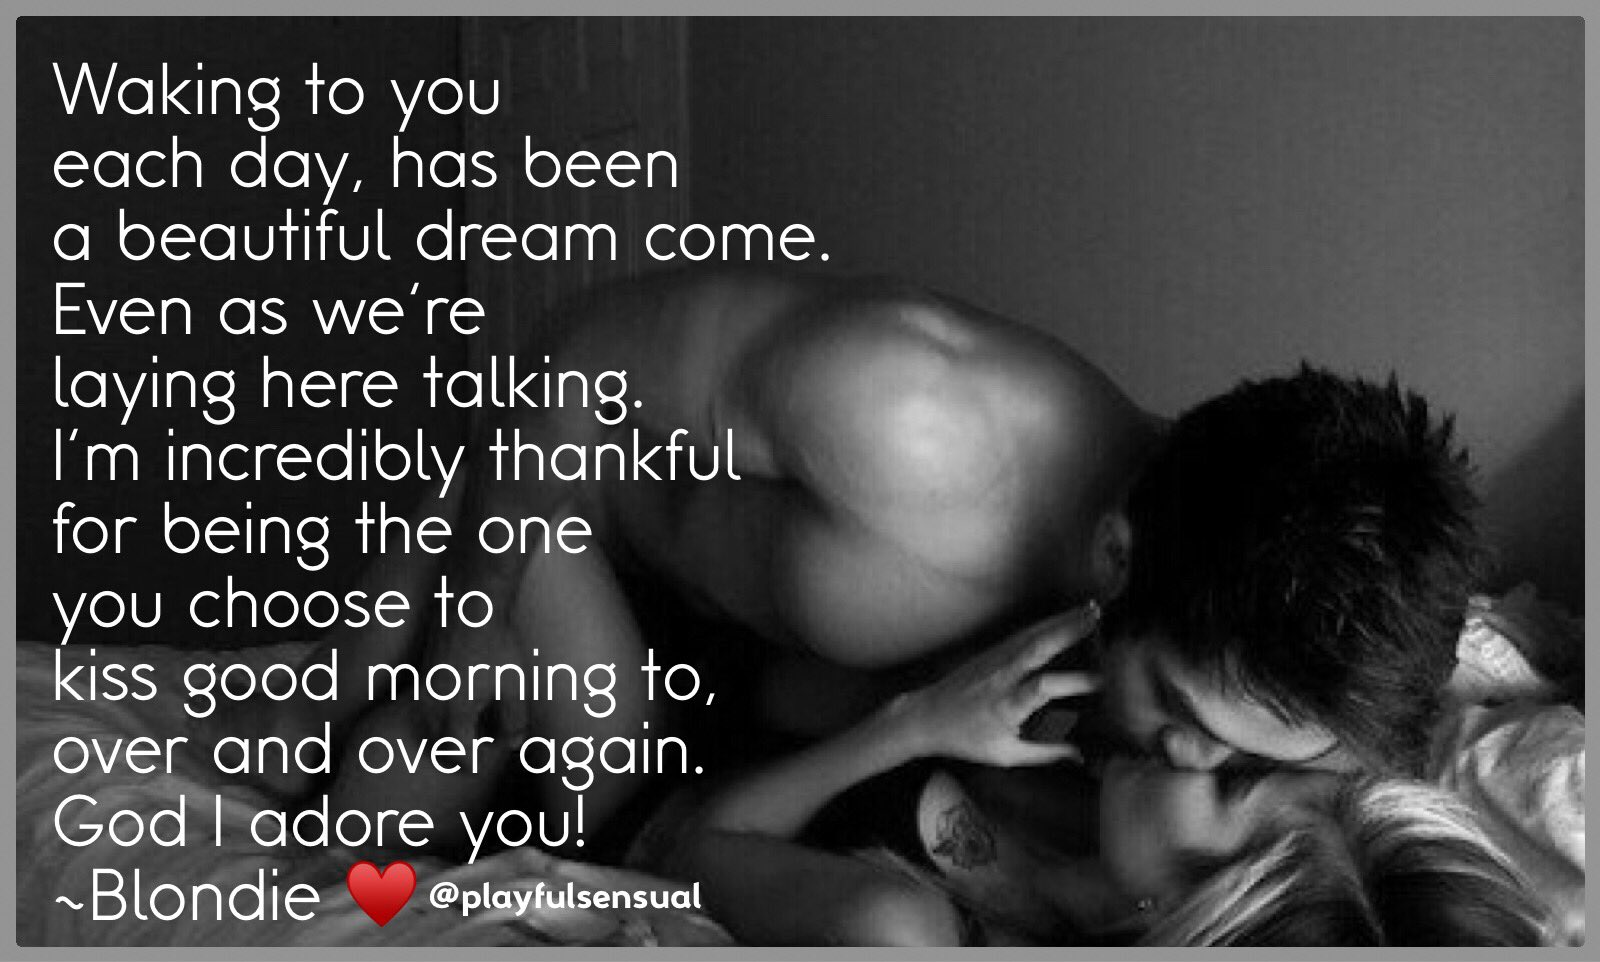 Waking to you each day, has been a beautiful dream come. Even as we're laying here talking. I'm incredibly thankful for being the one you choose to kiss good morning to, over and over again. God I adore you! ~Blondie ♥️ https://t.co/EYdRHbVqas